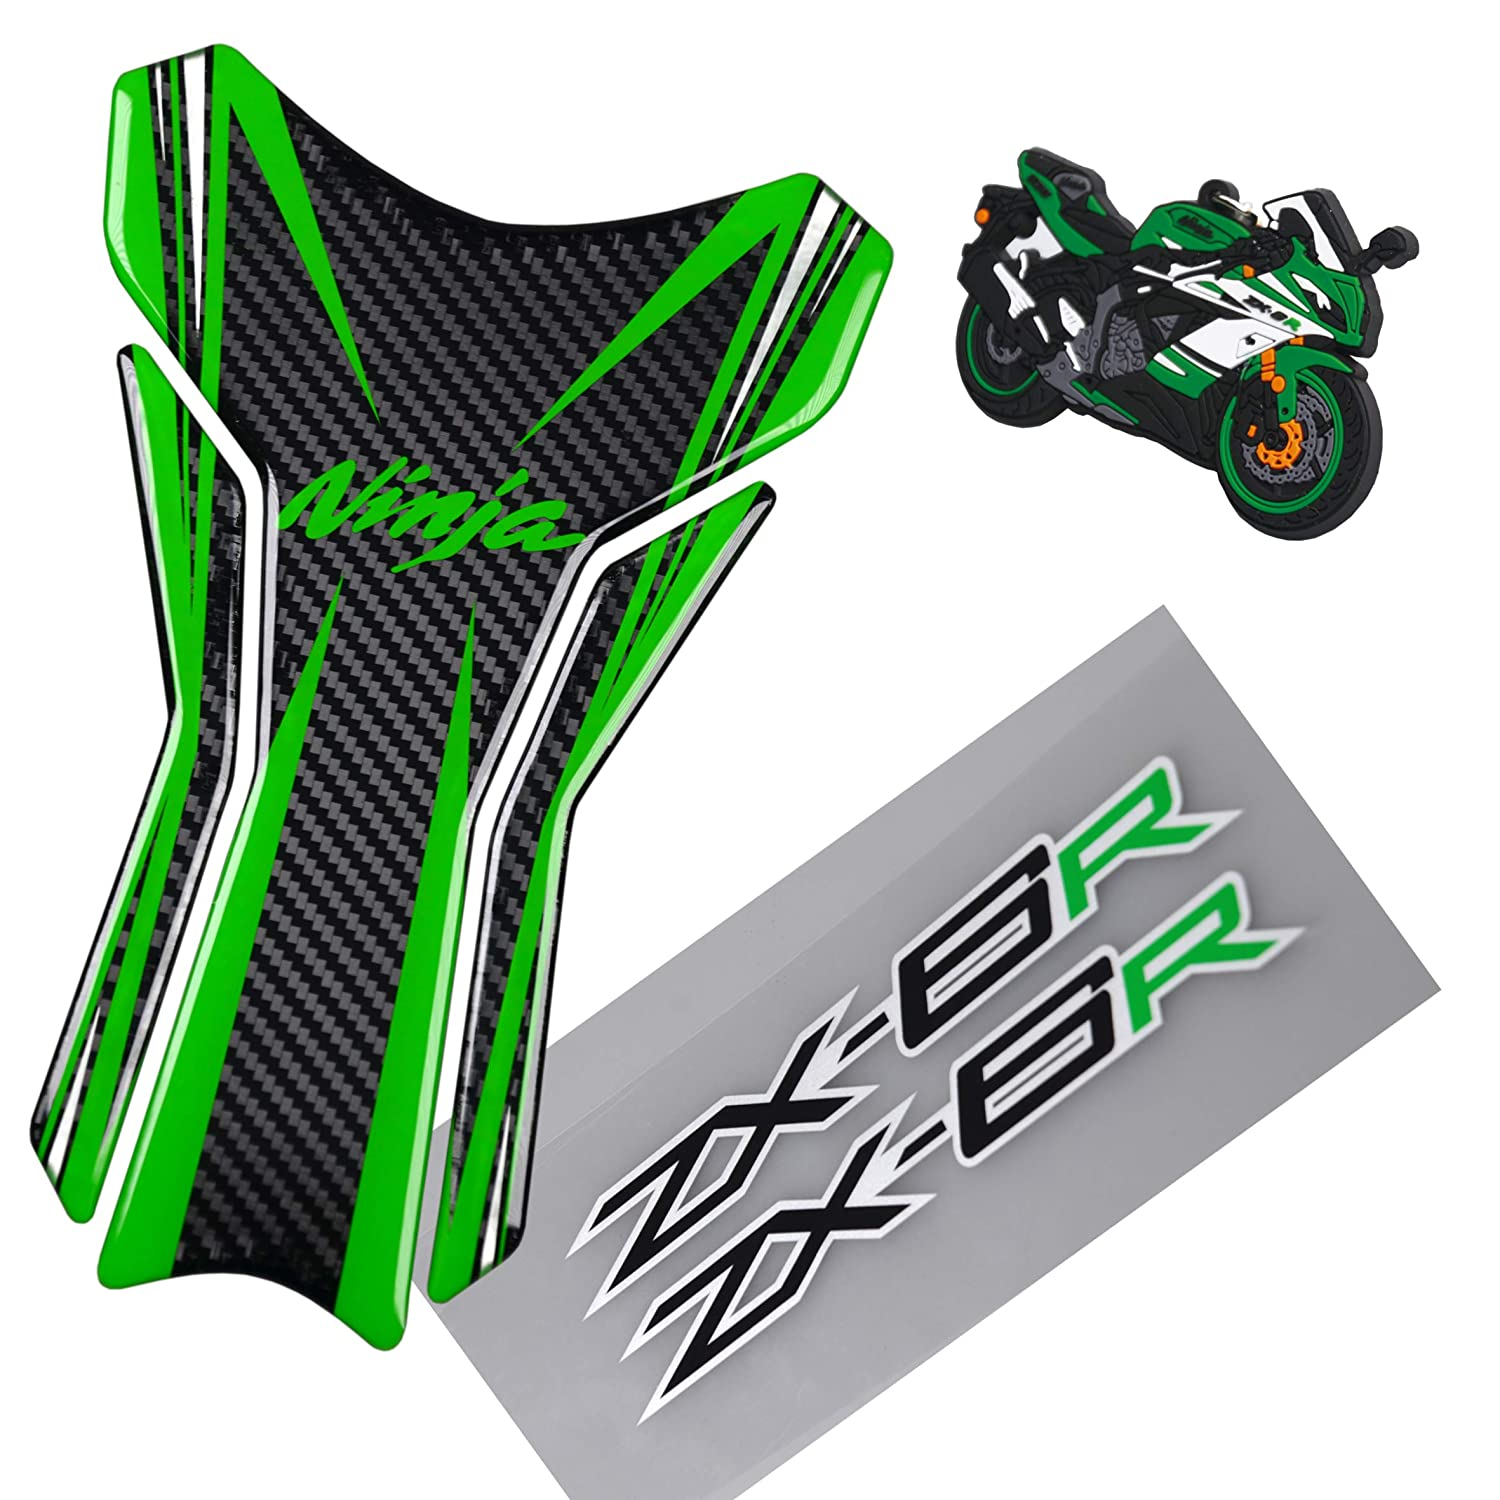 5D Carbon Fiber Motorcycle Green Logo Decal Vinyl Tank Protector Tank Pad For Kawasaki Ninja ZX6R 2pcs Reflective Motorcycle Ninja Zx6r Decal Sticker ...